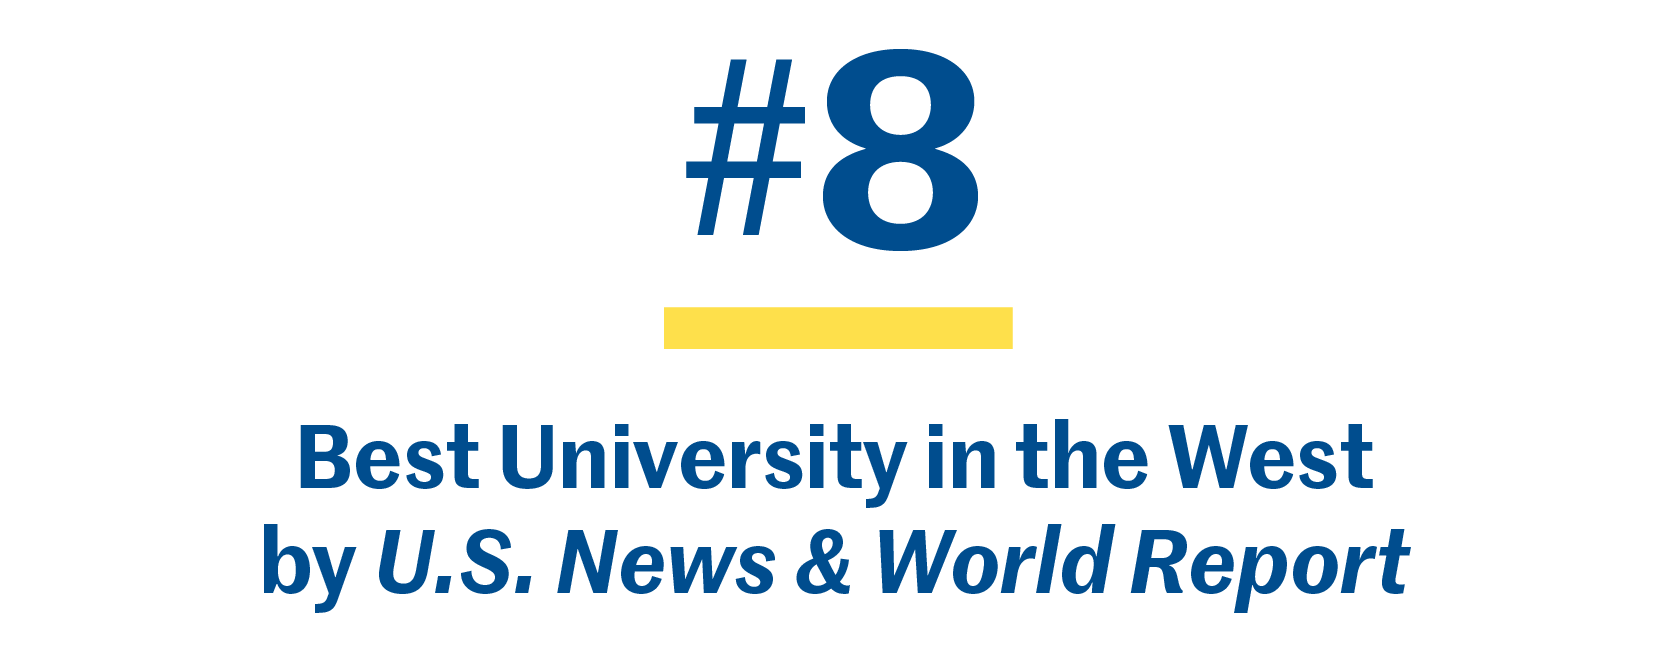 #8 best university in the West by U.S. News & World Report